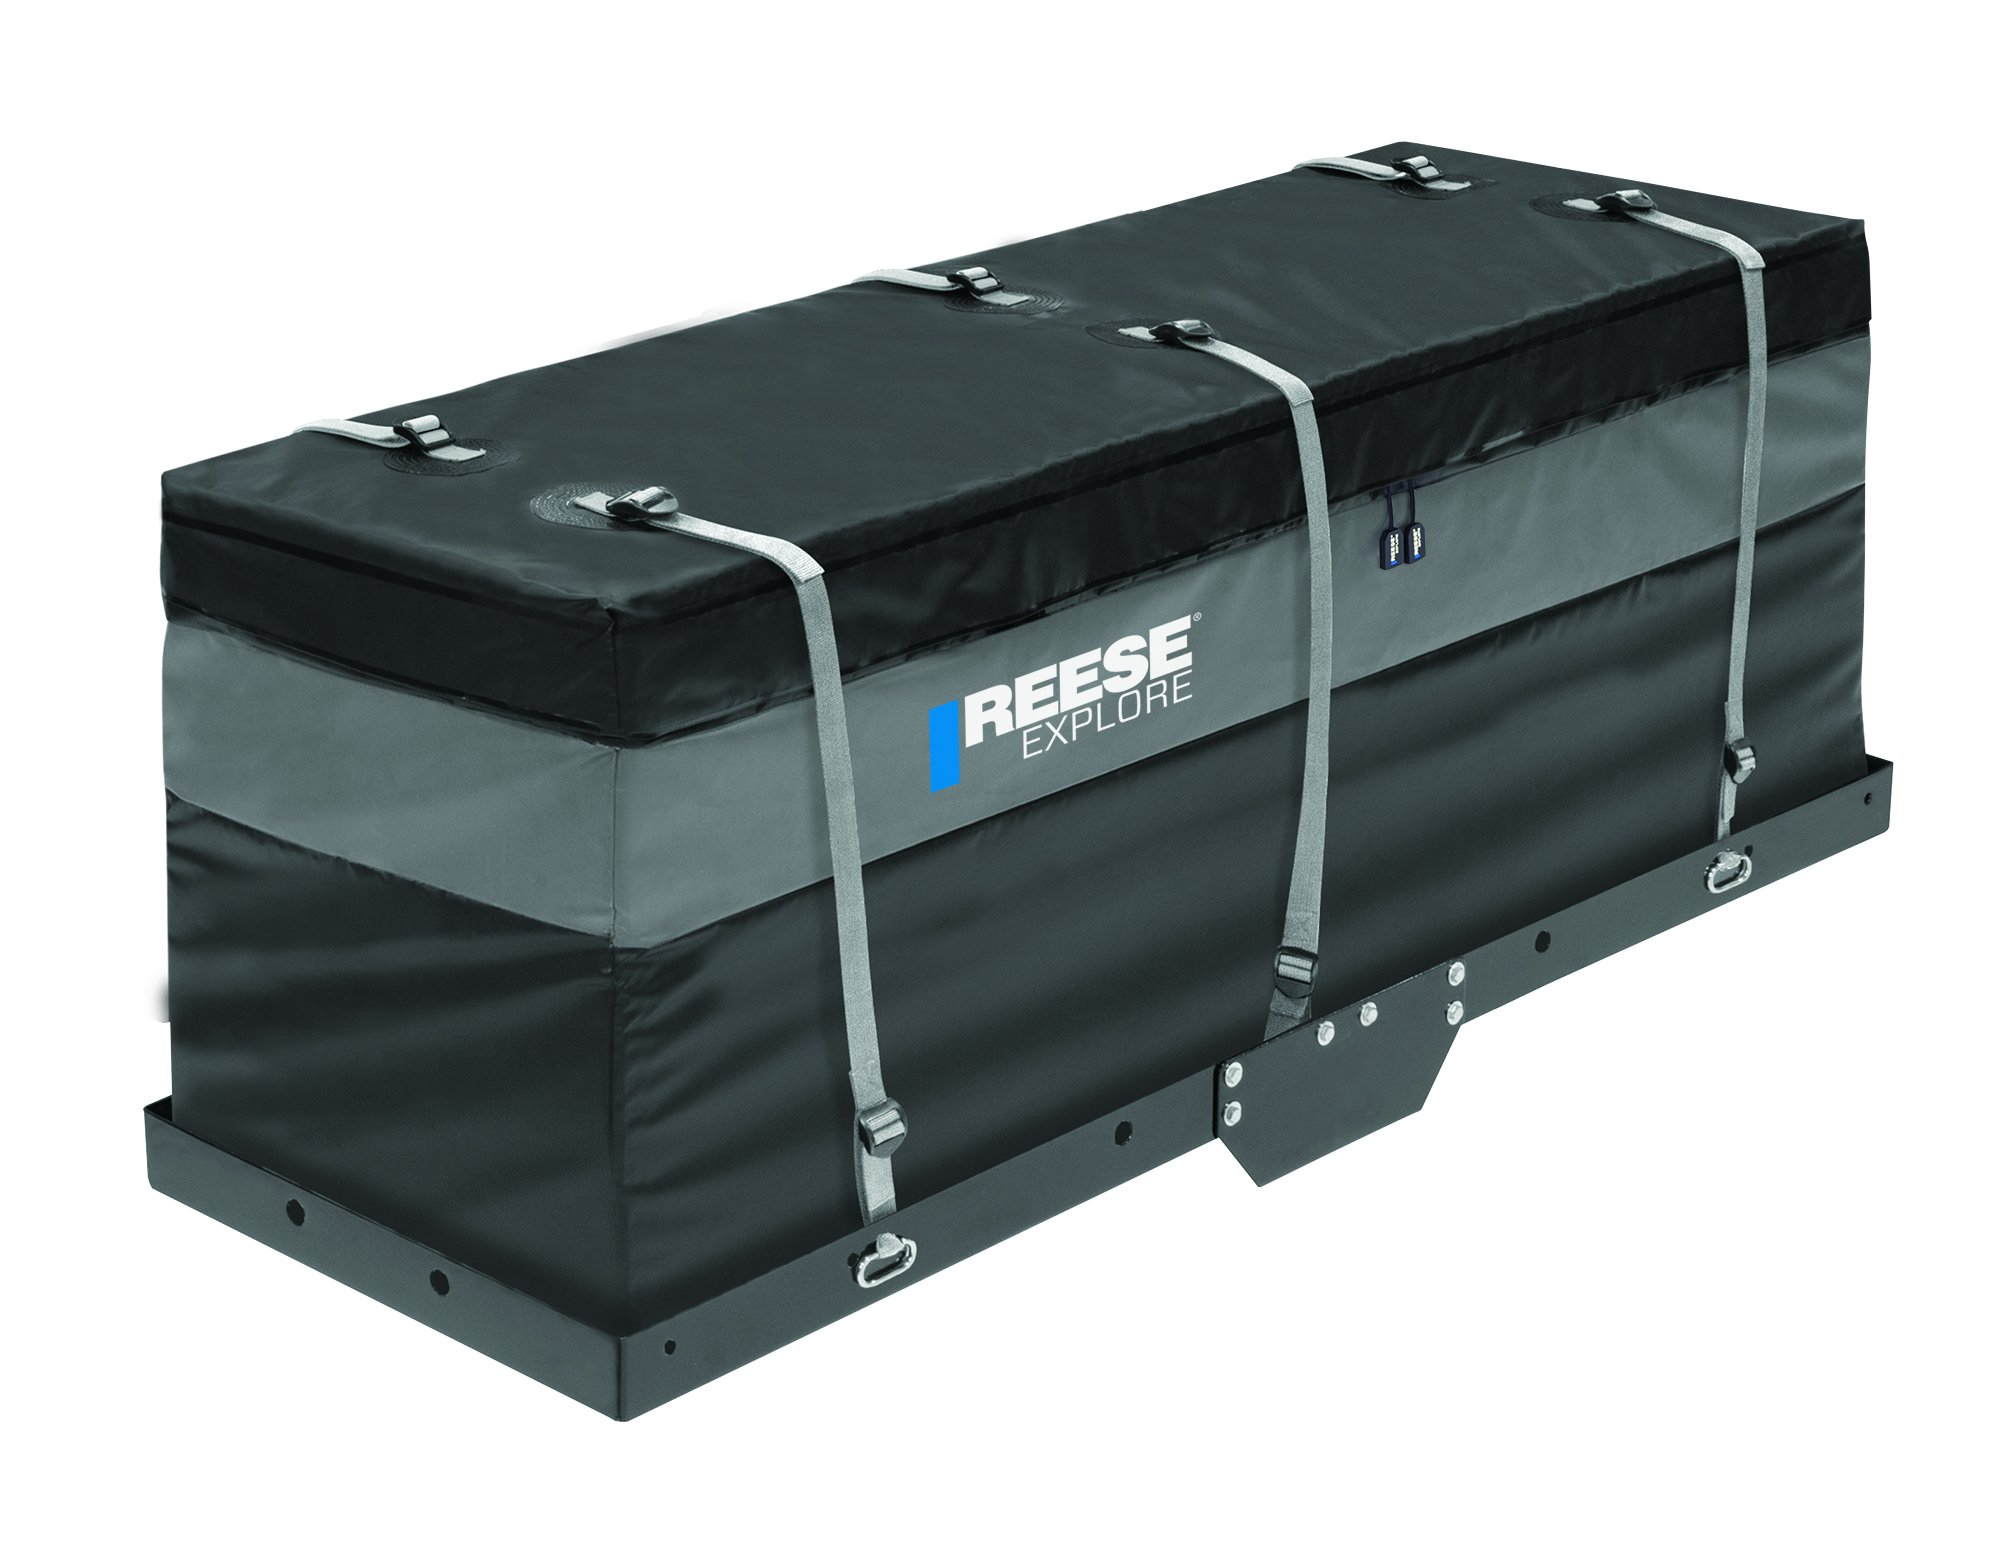 Reese Explore 63604 Rainproof Cargo Tray Bag by Reese Explore